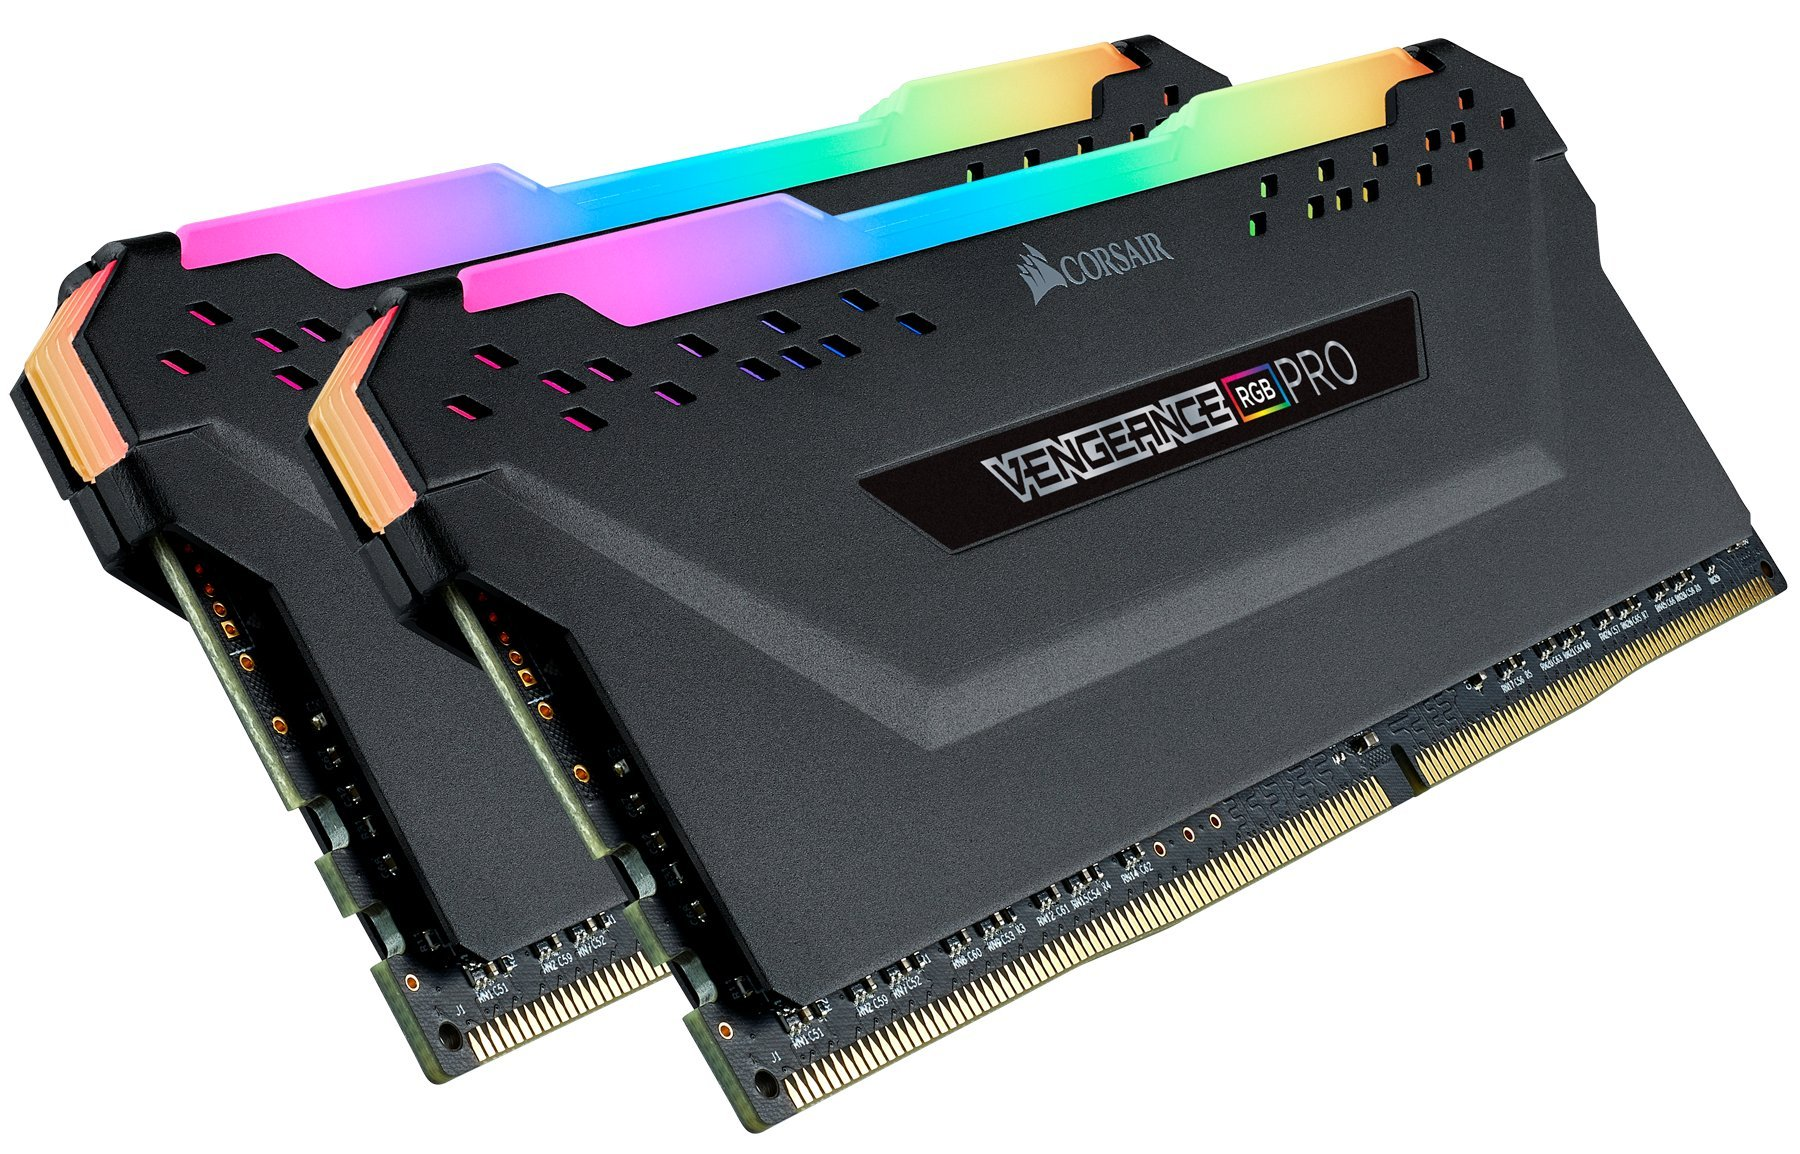 Memoria Ram 16gb Corsair Vengeance Rgb Pro (2x8gb) Ddr4 3600 (pc4-28800) C18 Amd Optimized  Black